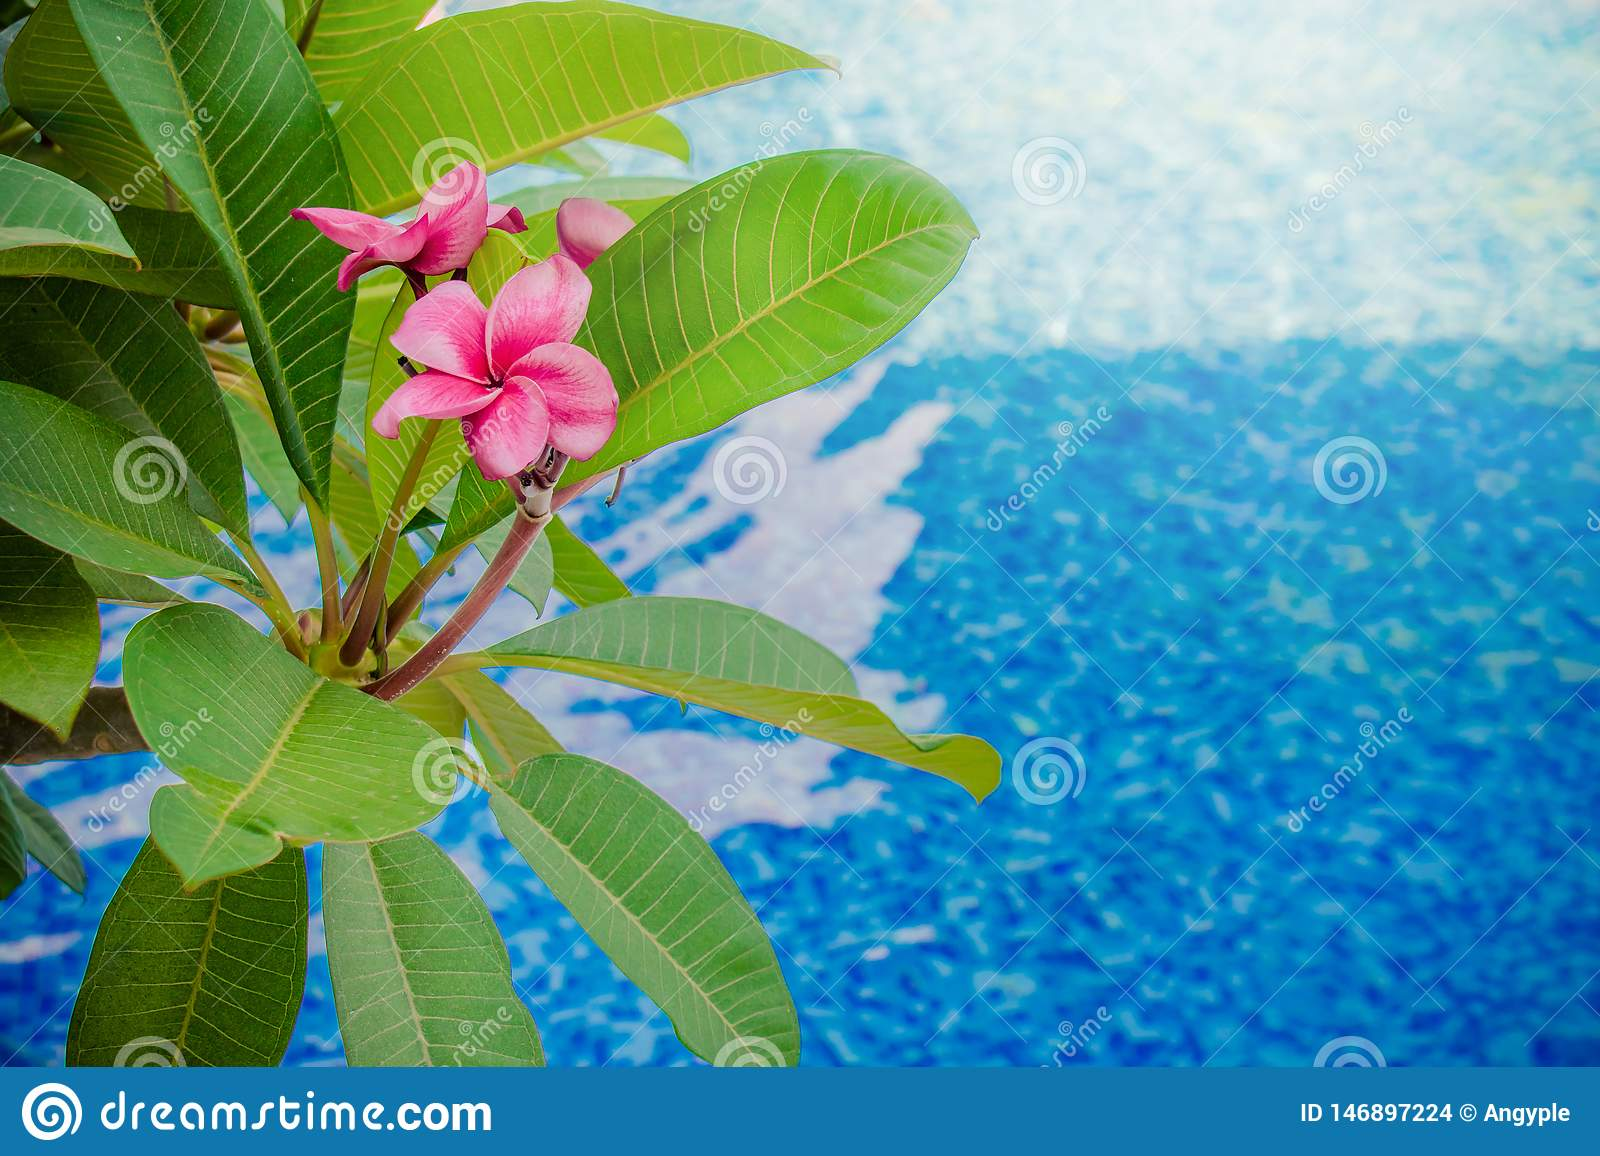 Close up Pink Frangipani or Plumeria flower and green leaves with swimming pool in the background.